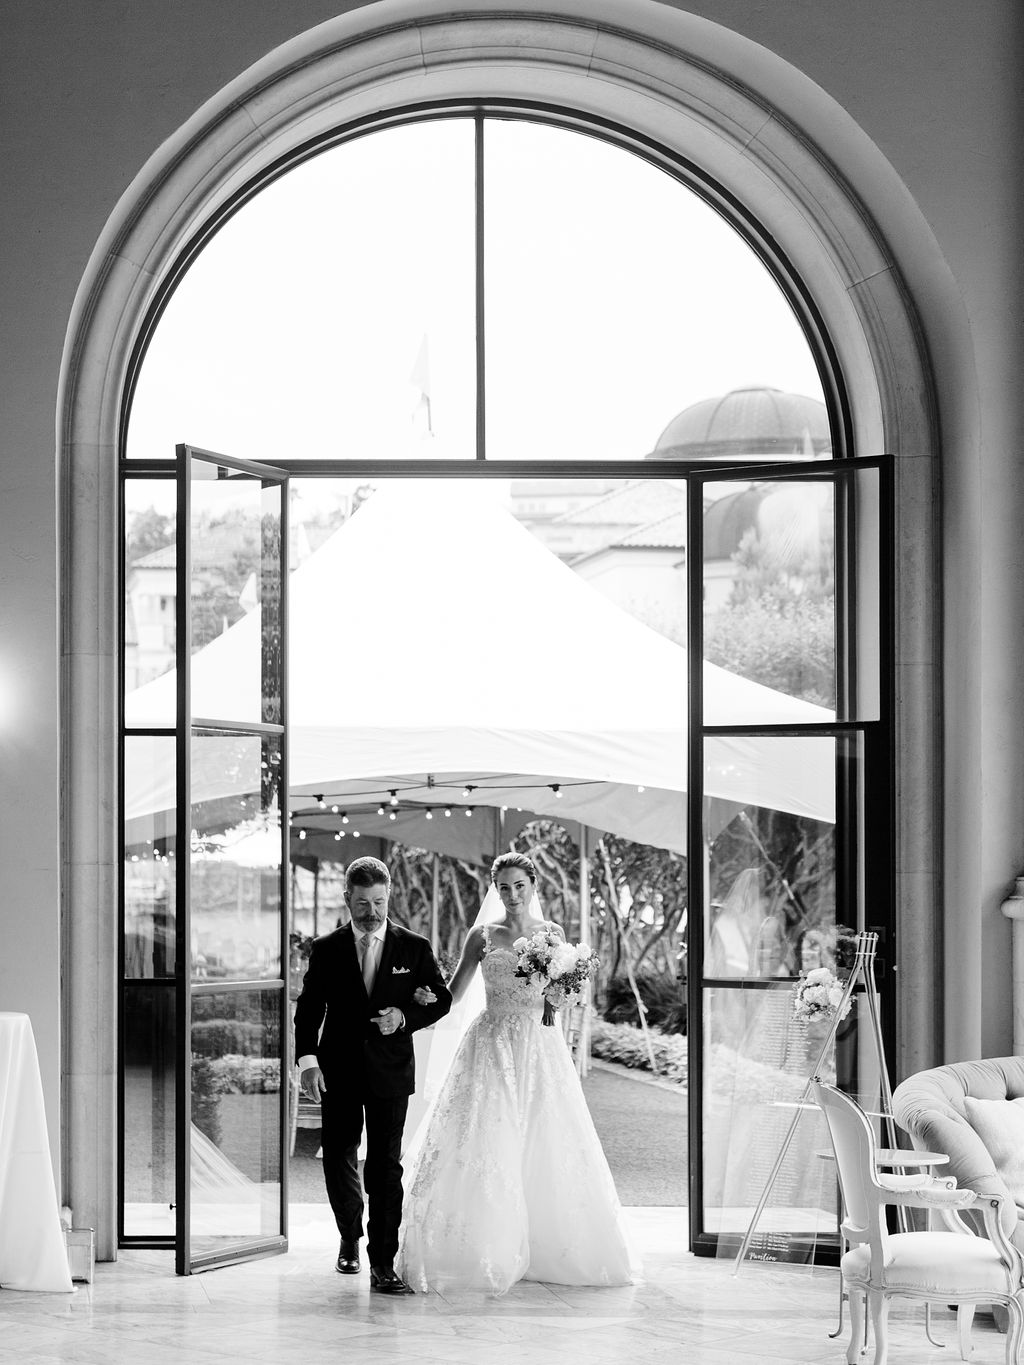 Best-Austin-Destination-Intimate-Wedding-Elopement-Photograper-Photographers-Villa-Del-Lago-46.jpg